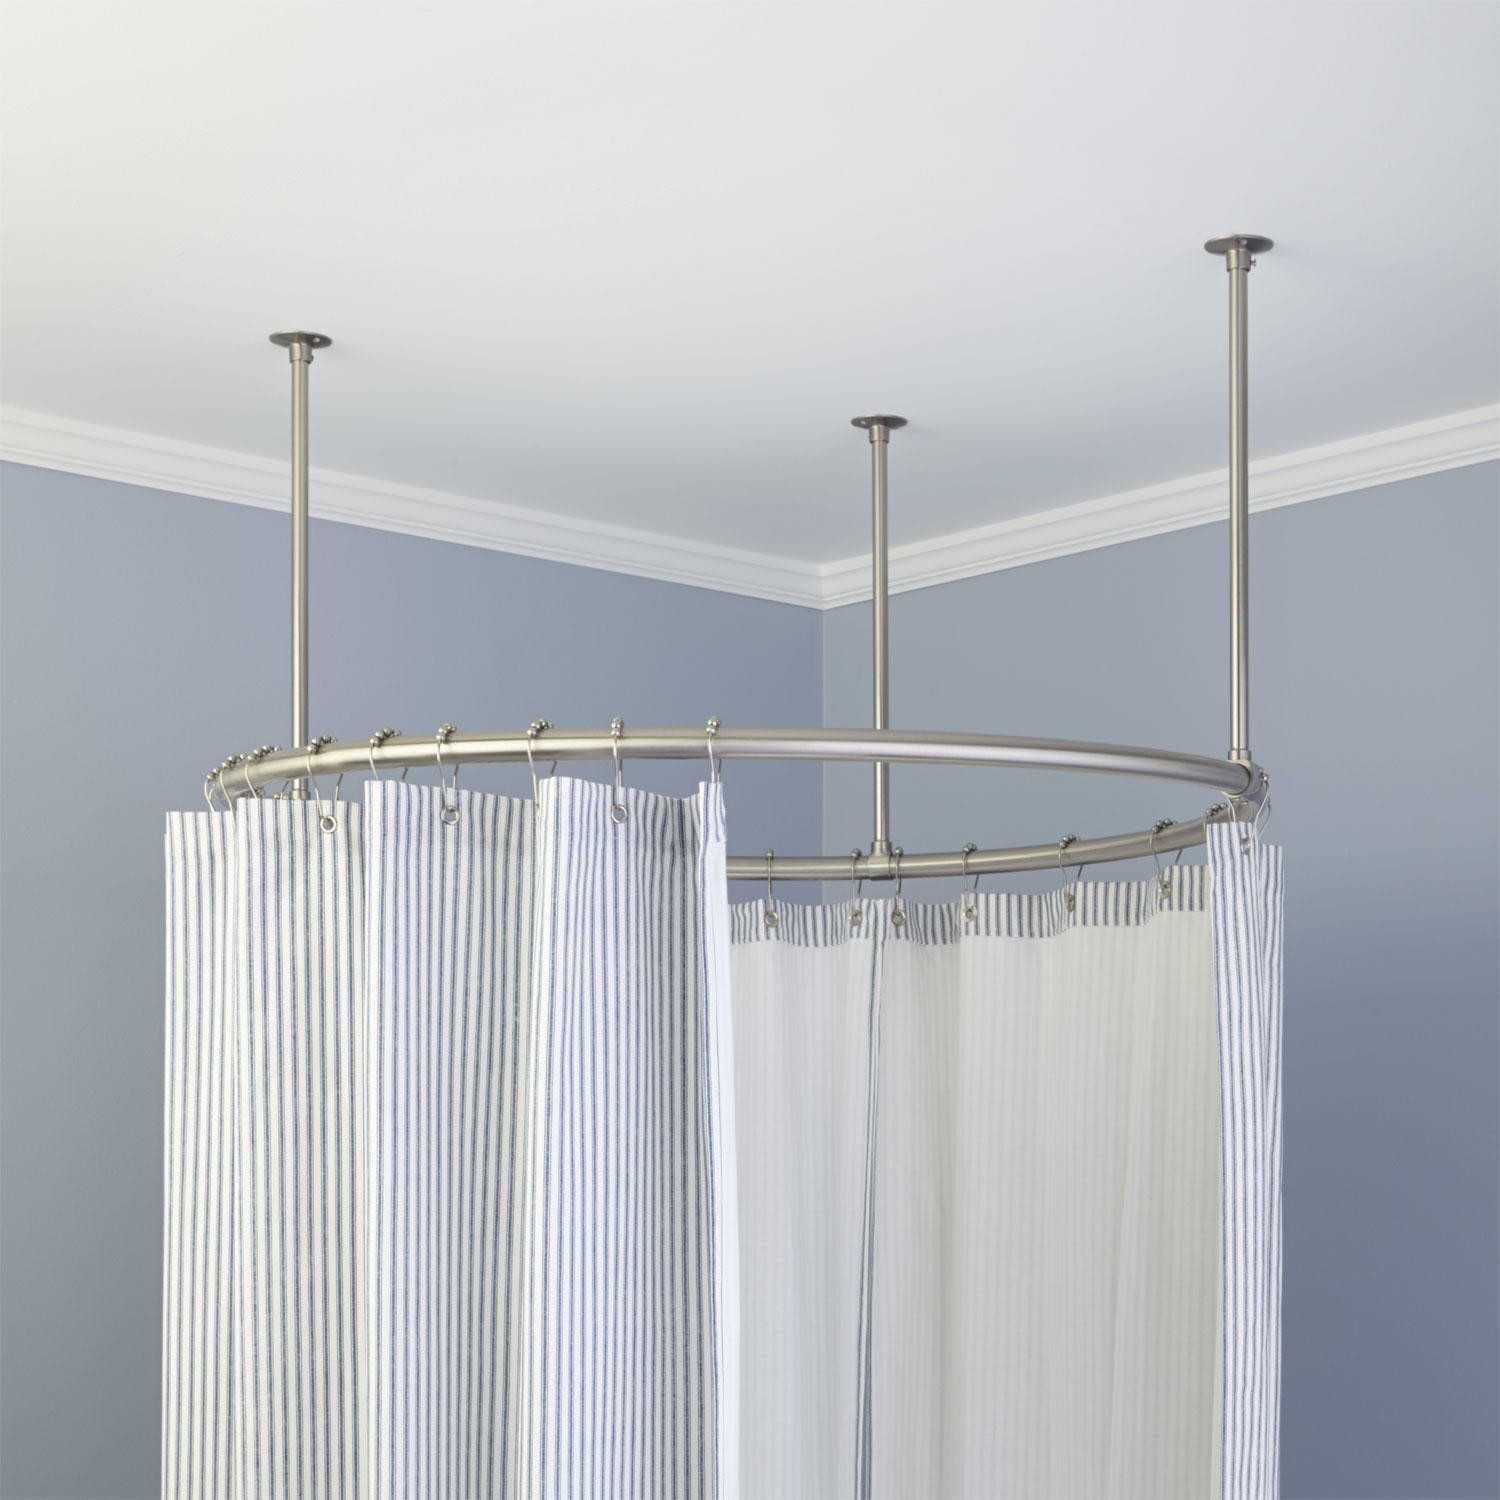 Round Shower Rod Signature Hardware For Any Shower Designs